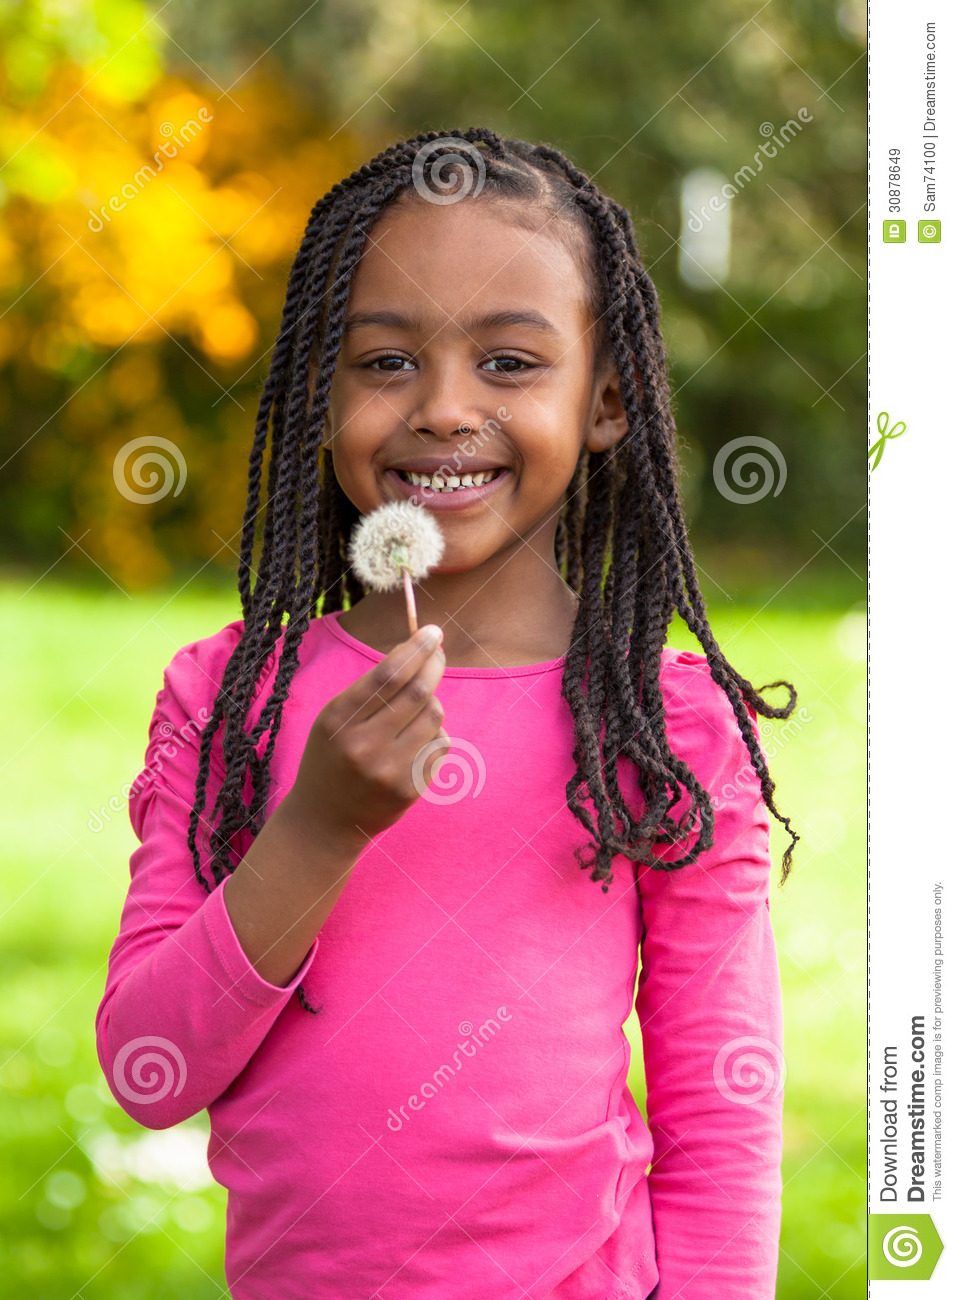 Outdoor Portrait Of A Cute Young Black Girl